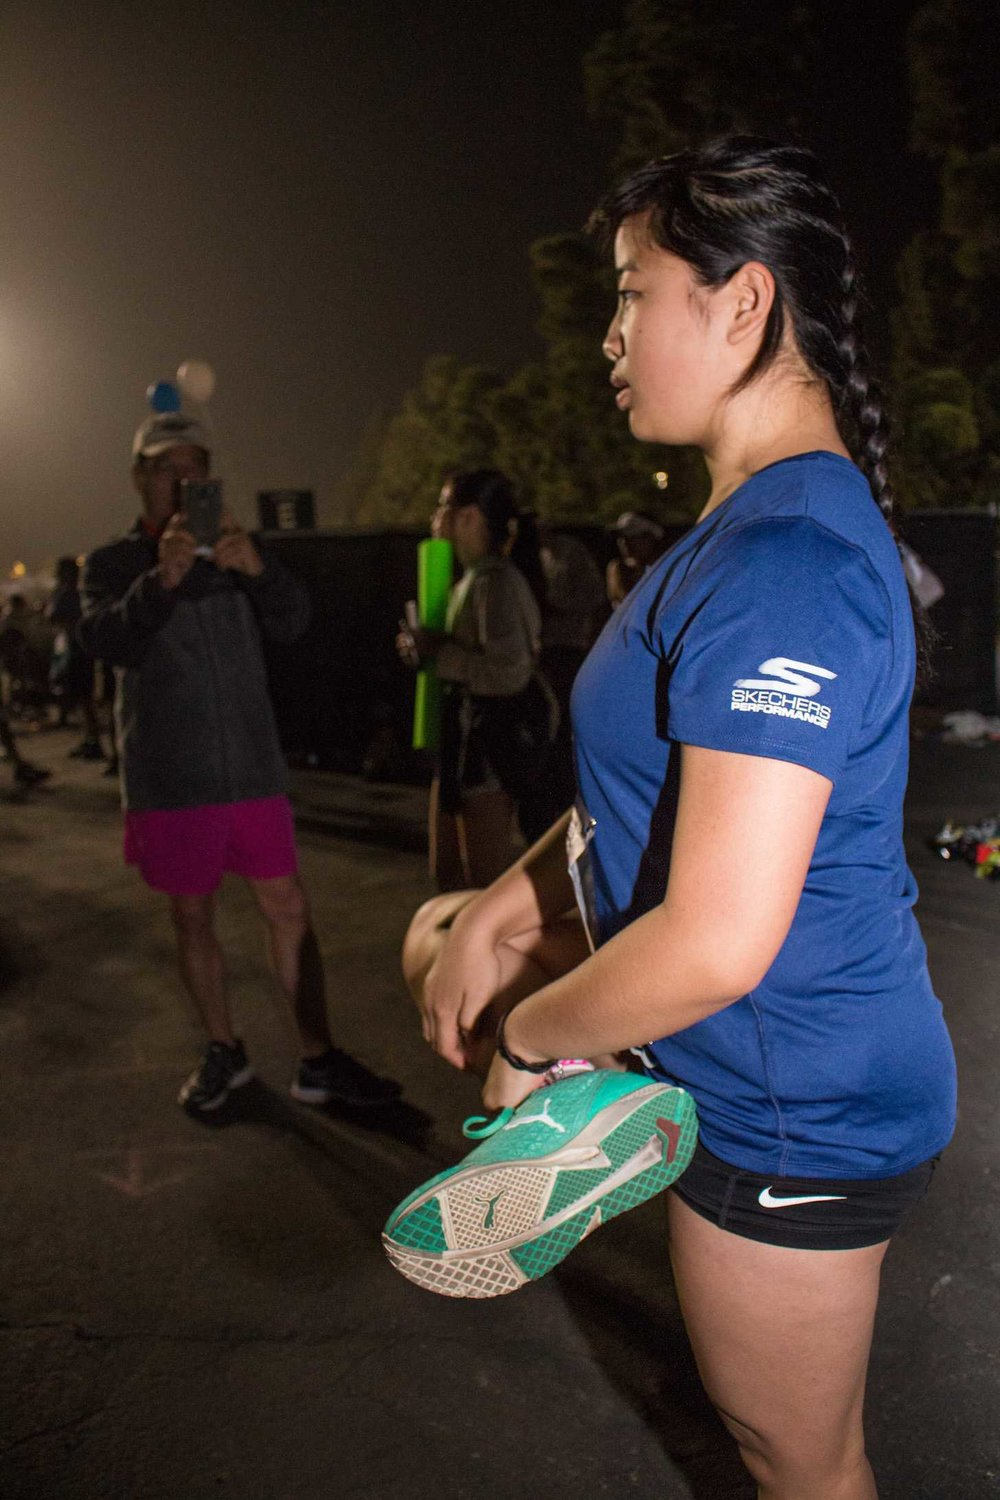 Santa Monica College Acssociated Students Activities Director, Kathy Pho (right) stretches before her 26.2 mile treck as preporation for the 2017 Skechers Performance LA Marathon on Sunday March 19, 2017 at the Dodger Stadium in Los Angeles, CA. Pho's Father, Que Pho (left), snaps a picture of her as she focuses on the 26.2 mile run she has been training for. Photo by Marisa Vasquez.